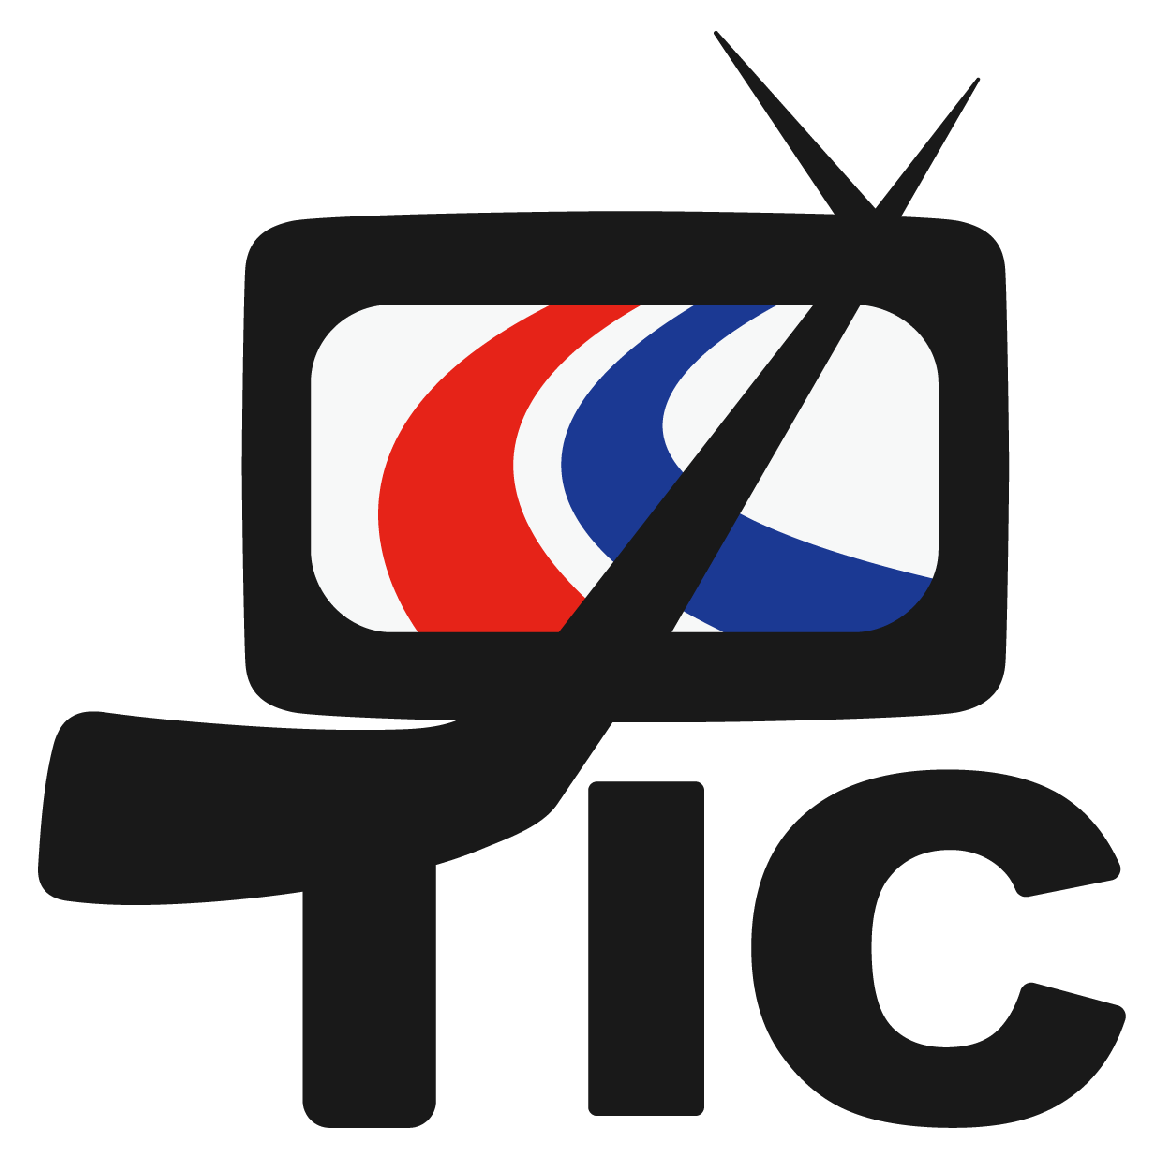 Tokyo IceHockey Channel